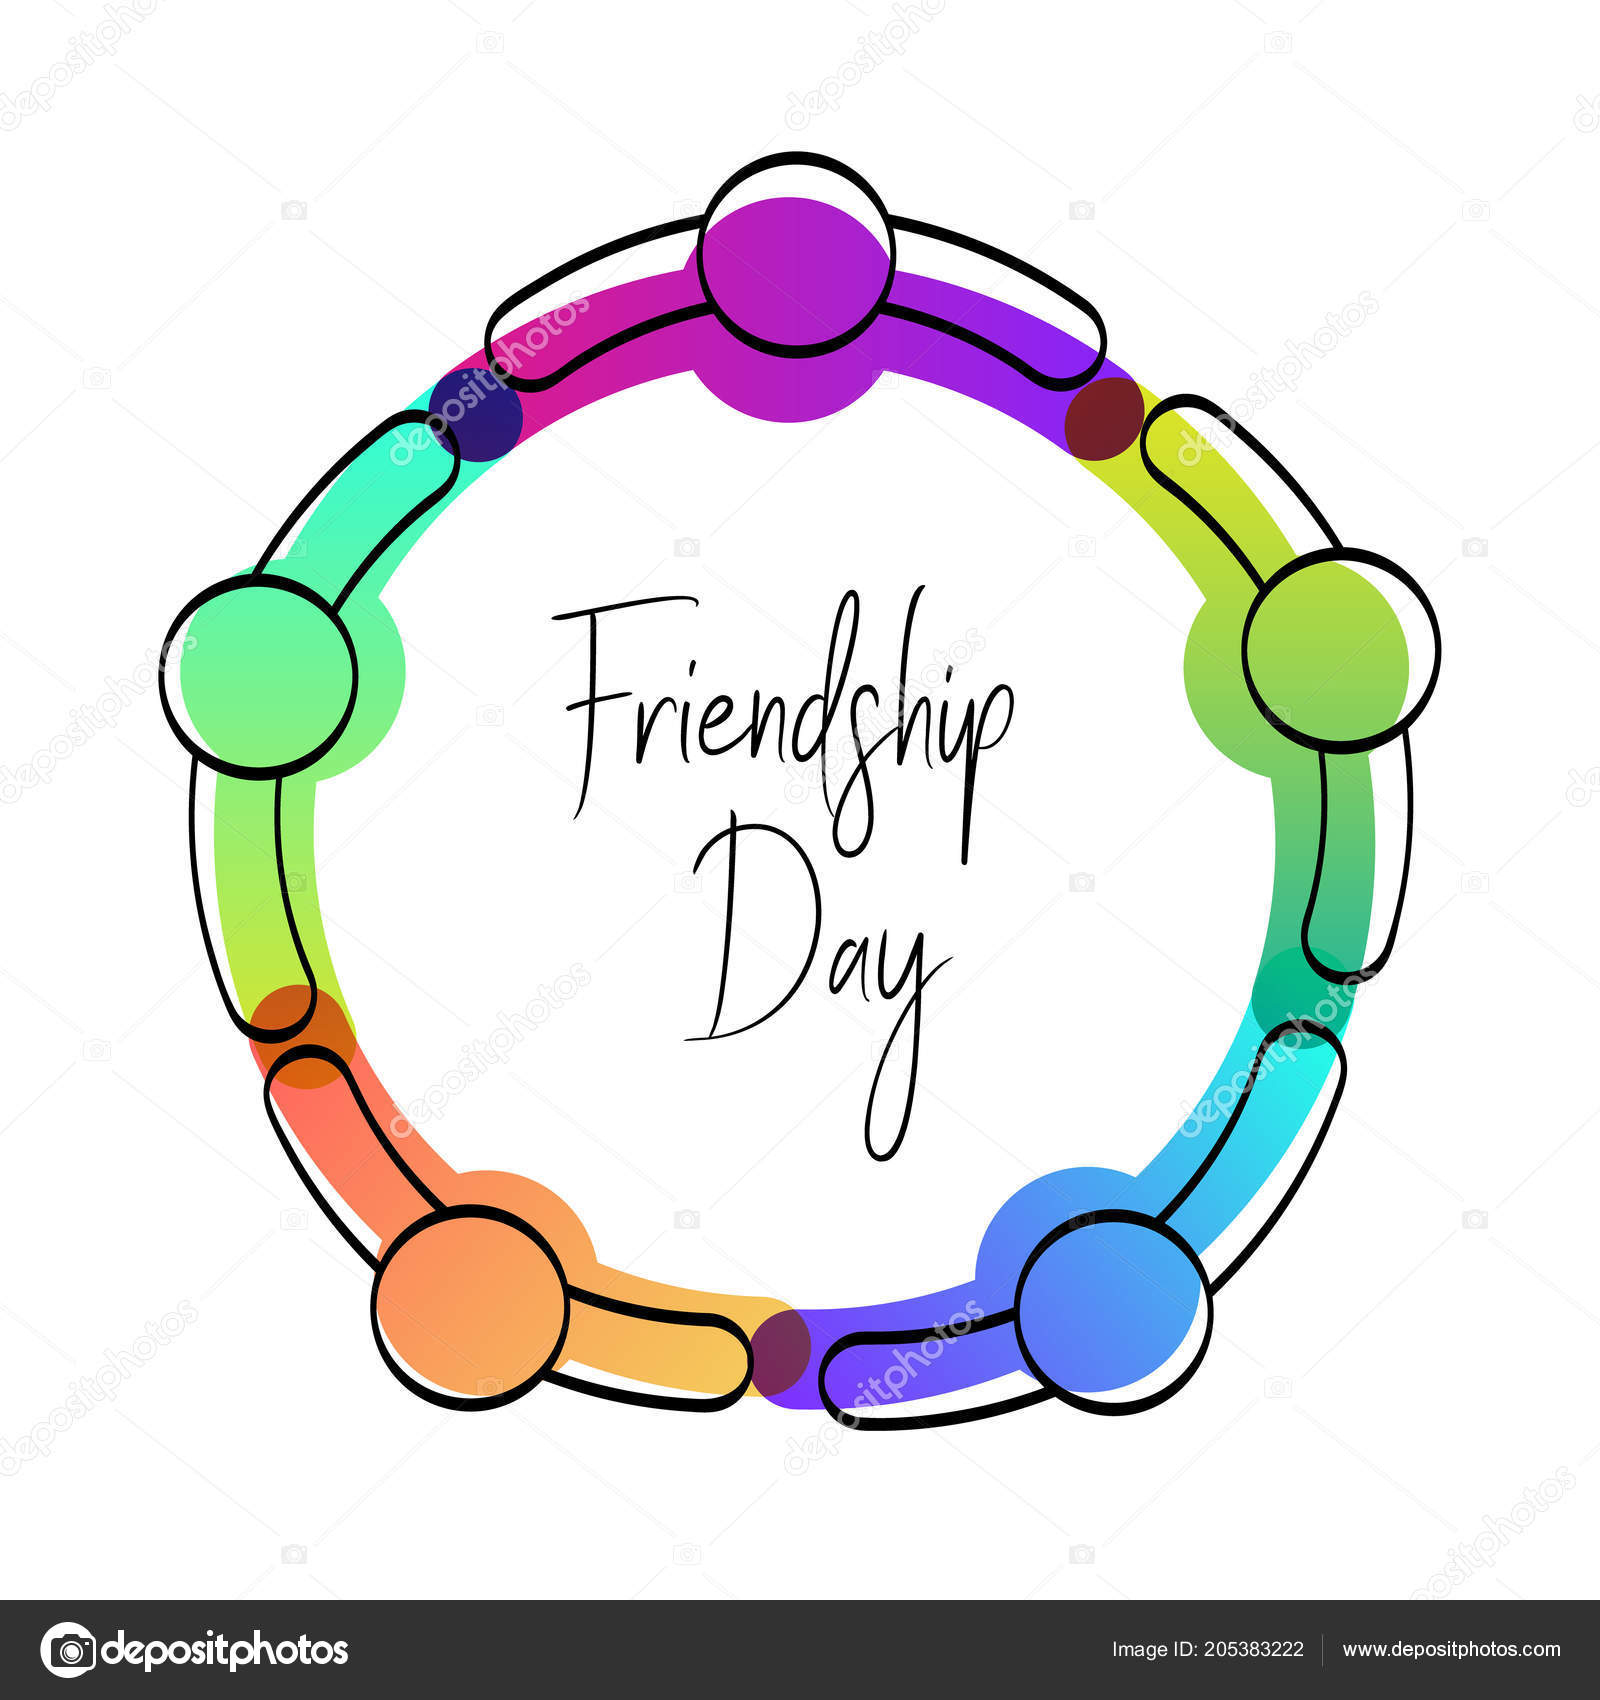 Happy friendship day greeting card friends doing group hug top happy friendship day greeting card friends doing group hug top stock vector m4hsunfo